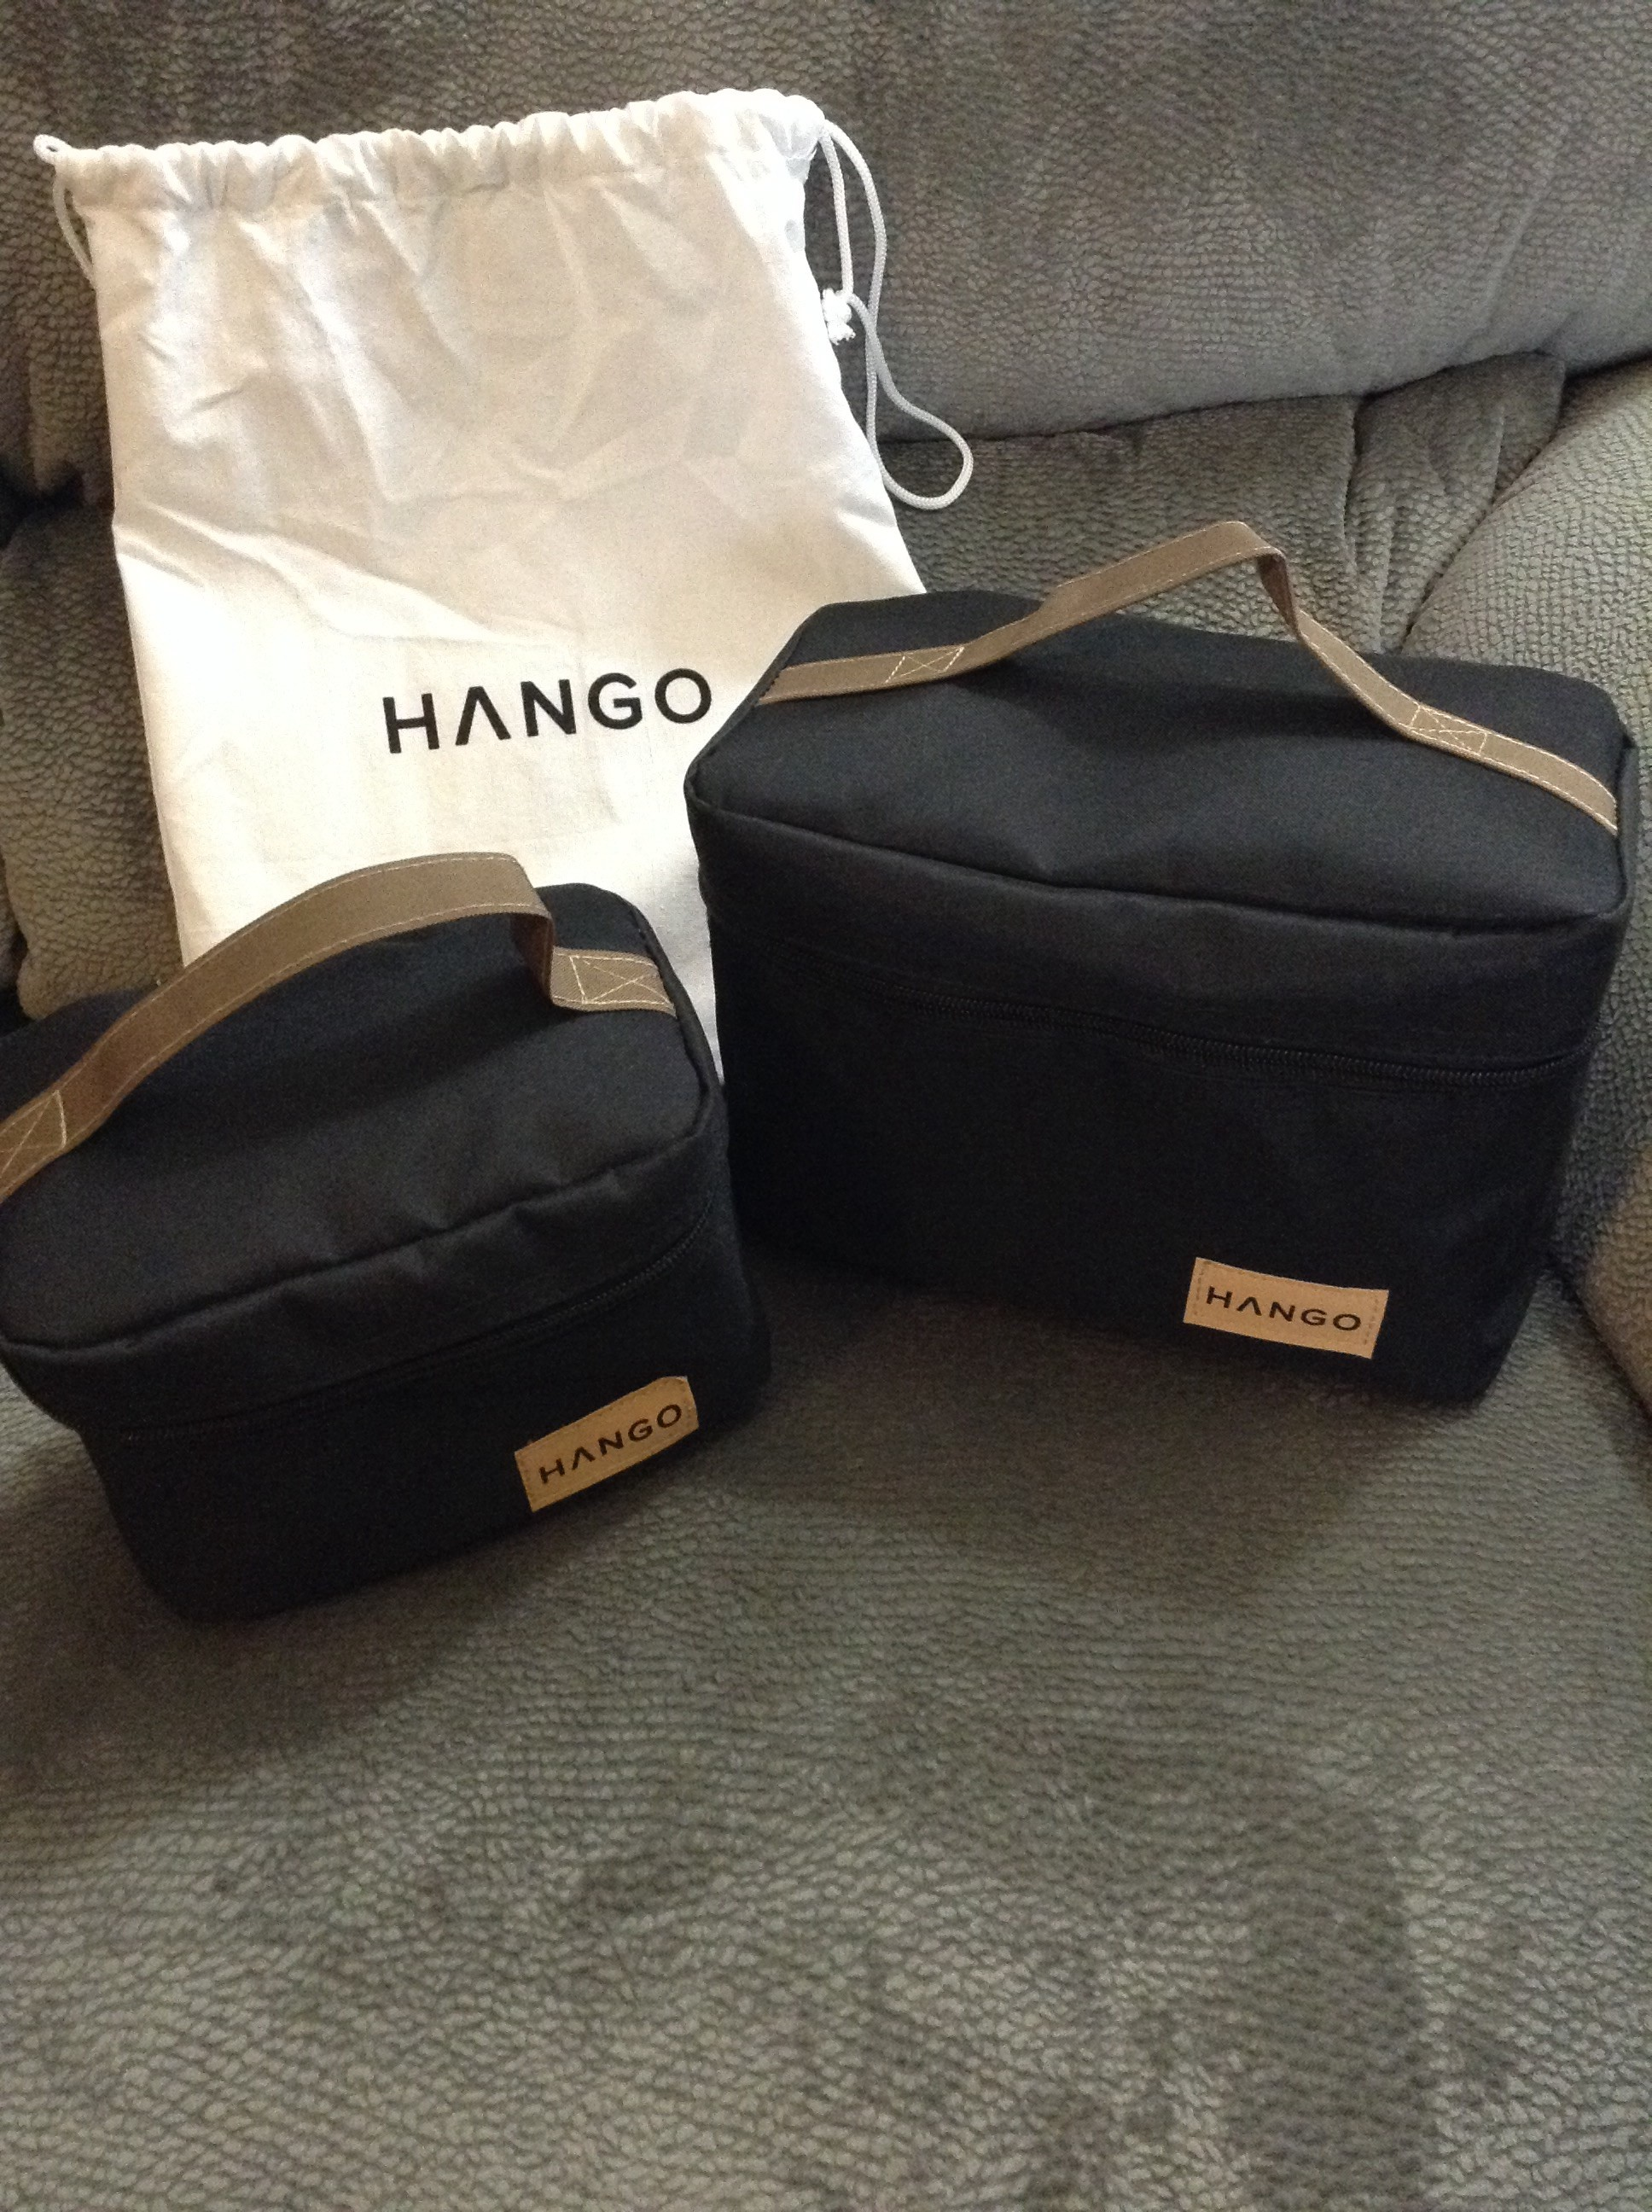 Lunch Bag Hango Set Of Two Sizes Small And Large By